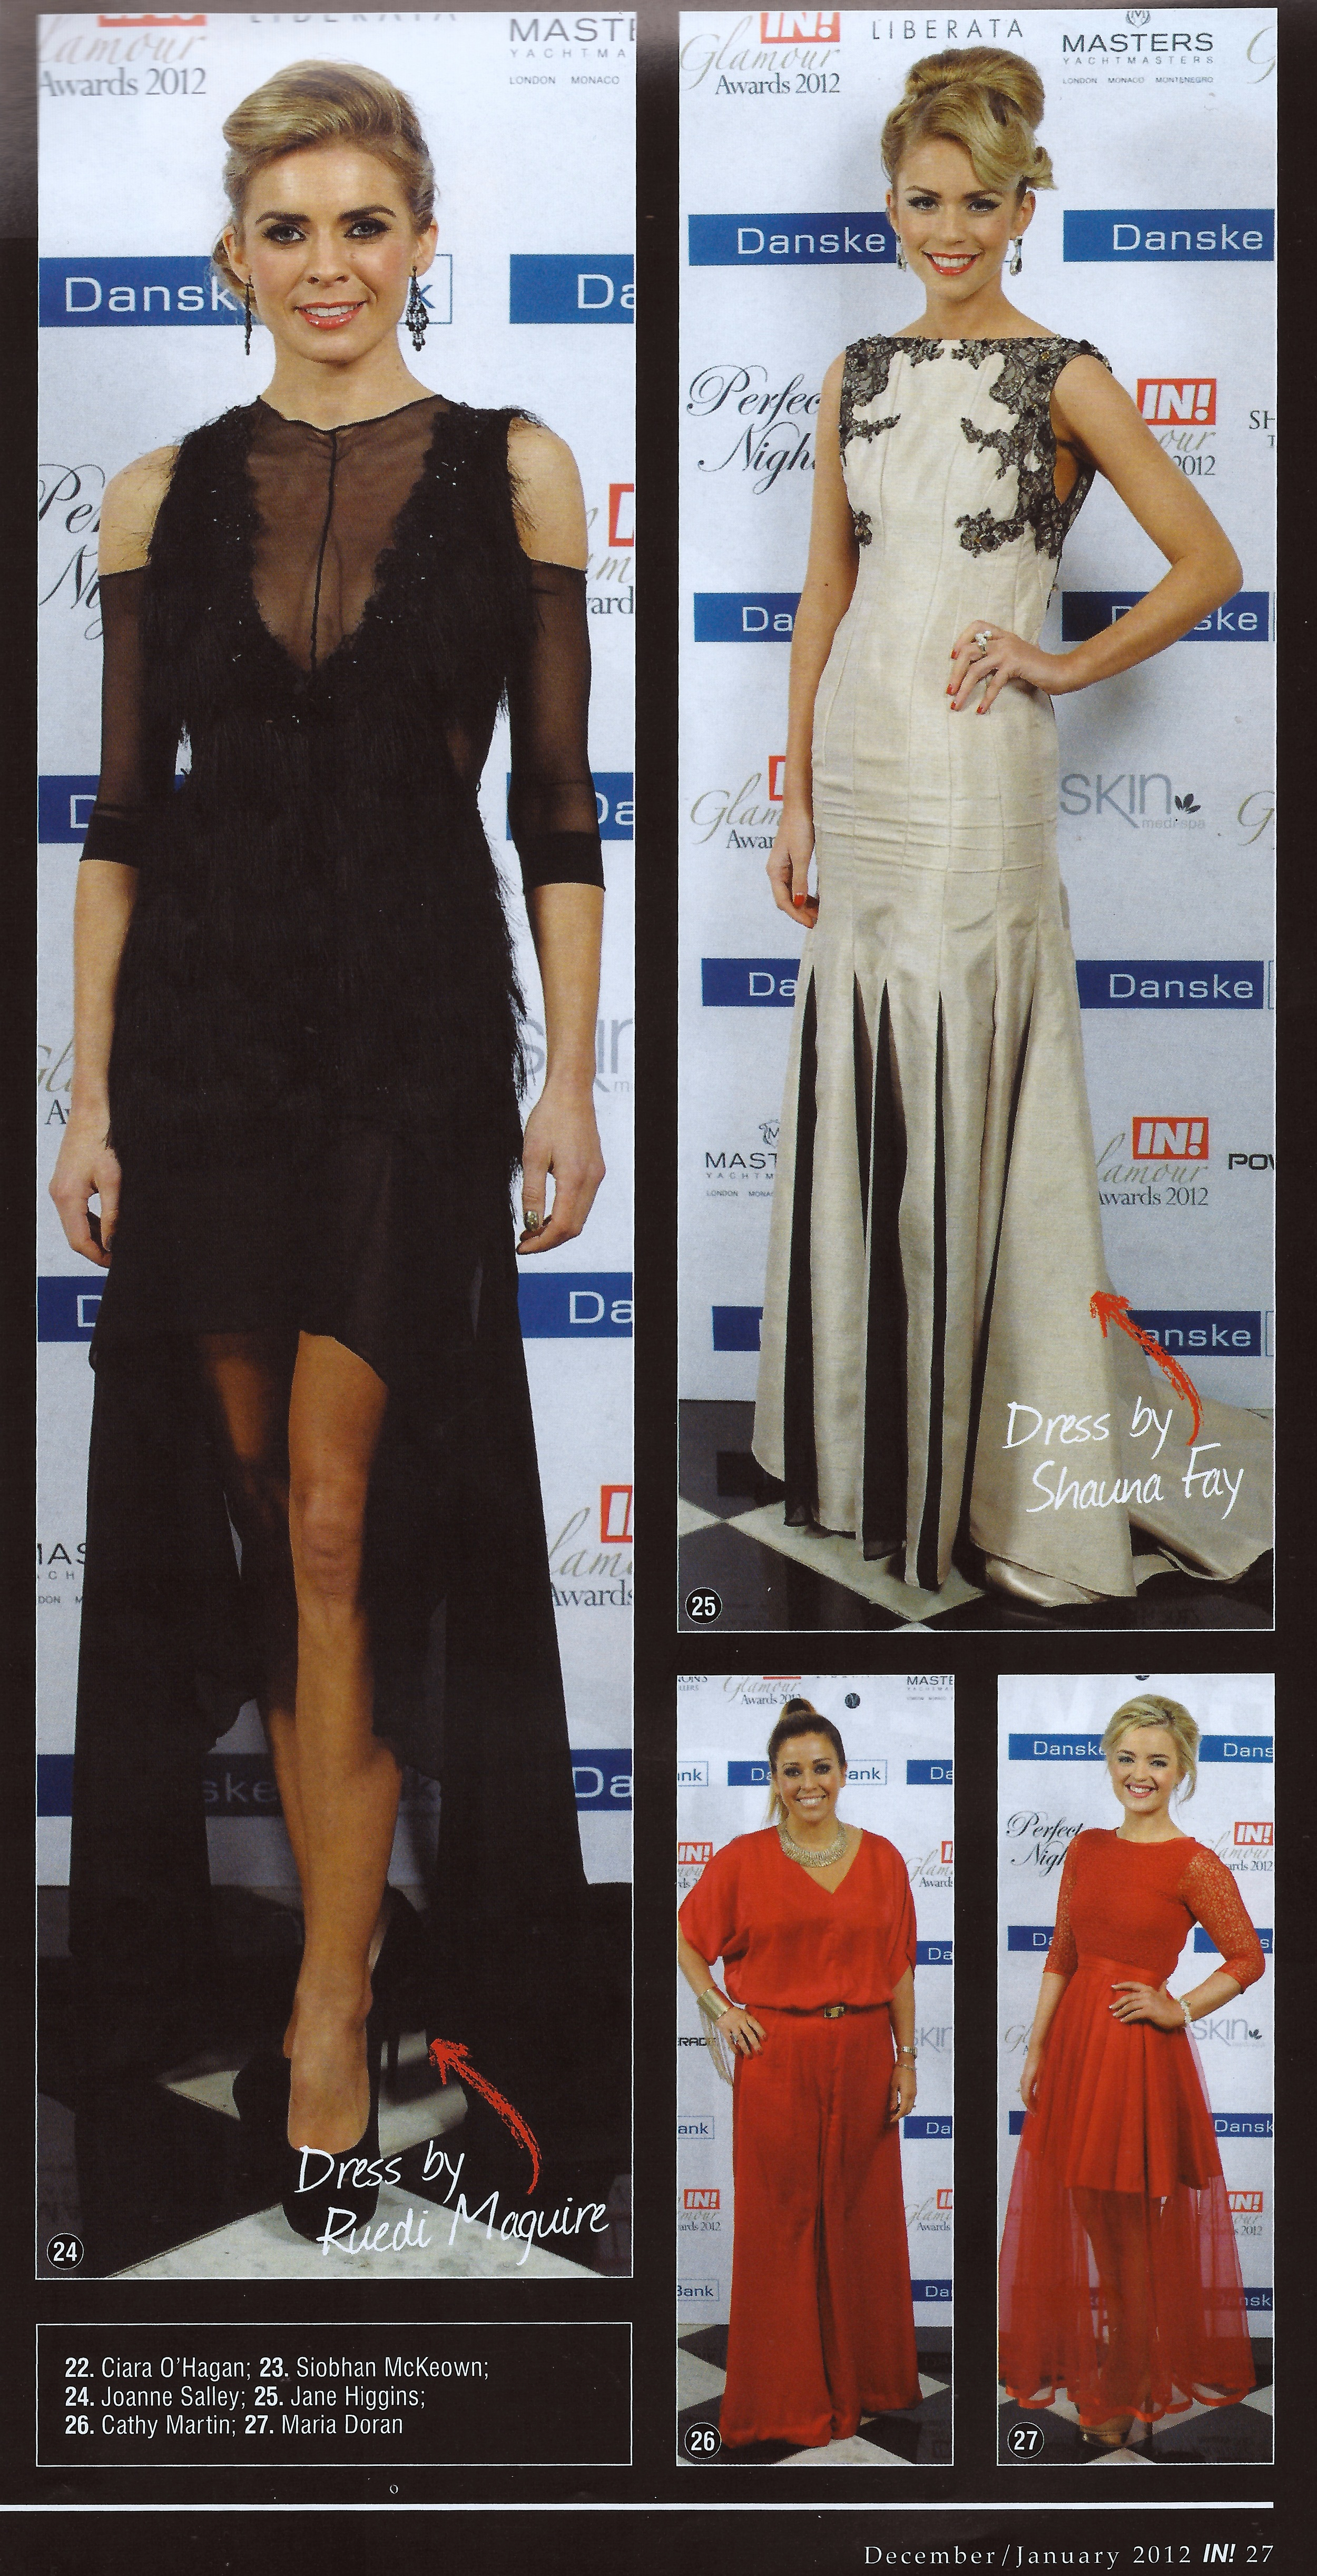 Joanne Salley left and Maria Doran BBC Young Apprentice bottom right, wearing RUEDI - IN! Magazine Awards Dec 2012